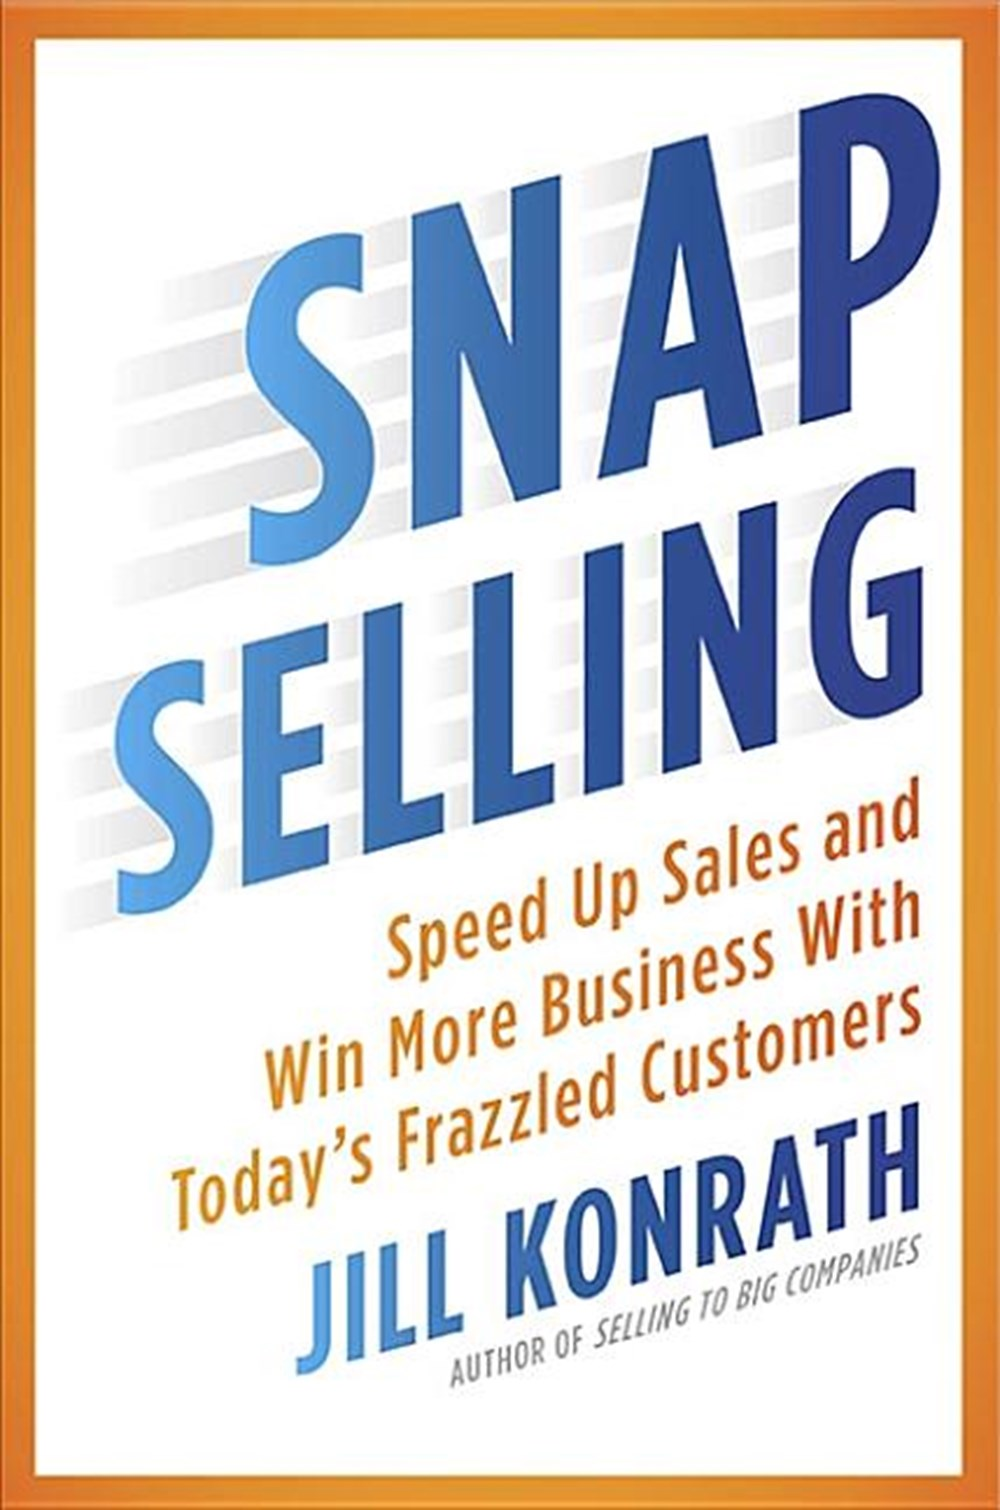 Snap Selling Speed Up Sales and Win More Business with Today's Frazzled Customers